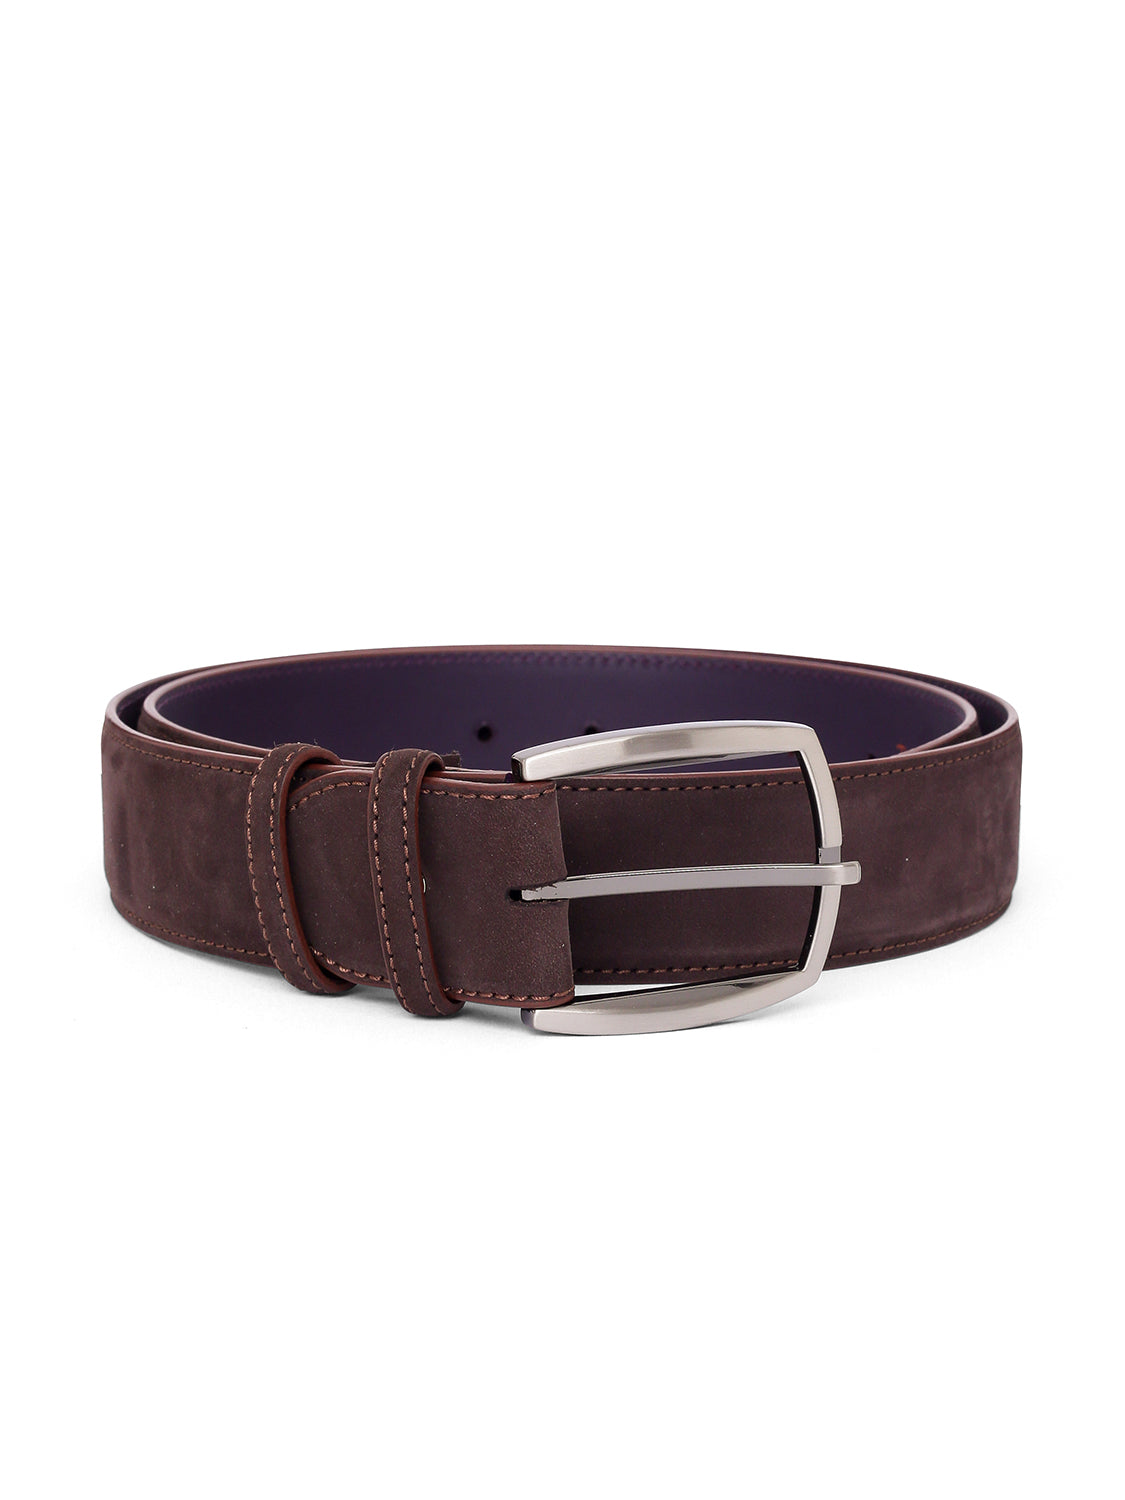 Elliot Rhodes Suede Belt (Brown) - Union 22